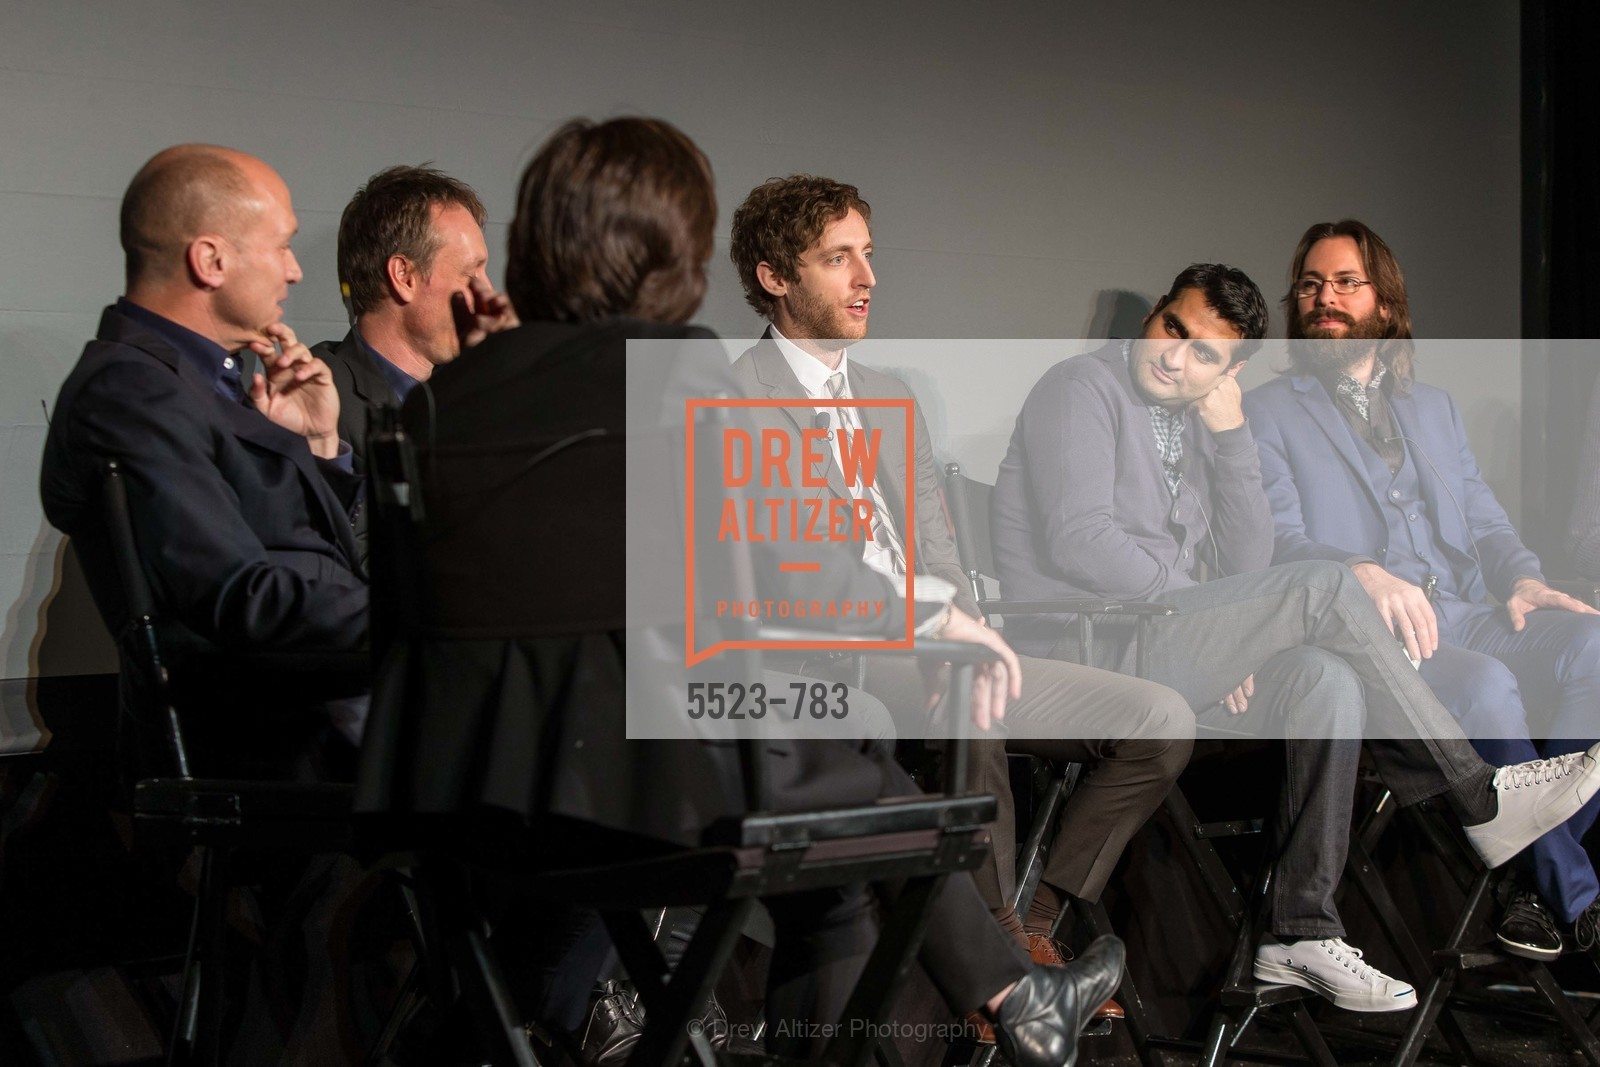 Thomas Middleditch, Kumail Nanjiani, Martin Starr, HBO'S SILICON VALLEY San Francisco Screening, US, April 9th, 2015,Drew Altizer, Drew Altizer Photography, full-service agency, private events, San Francisco photographer, photographer california